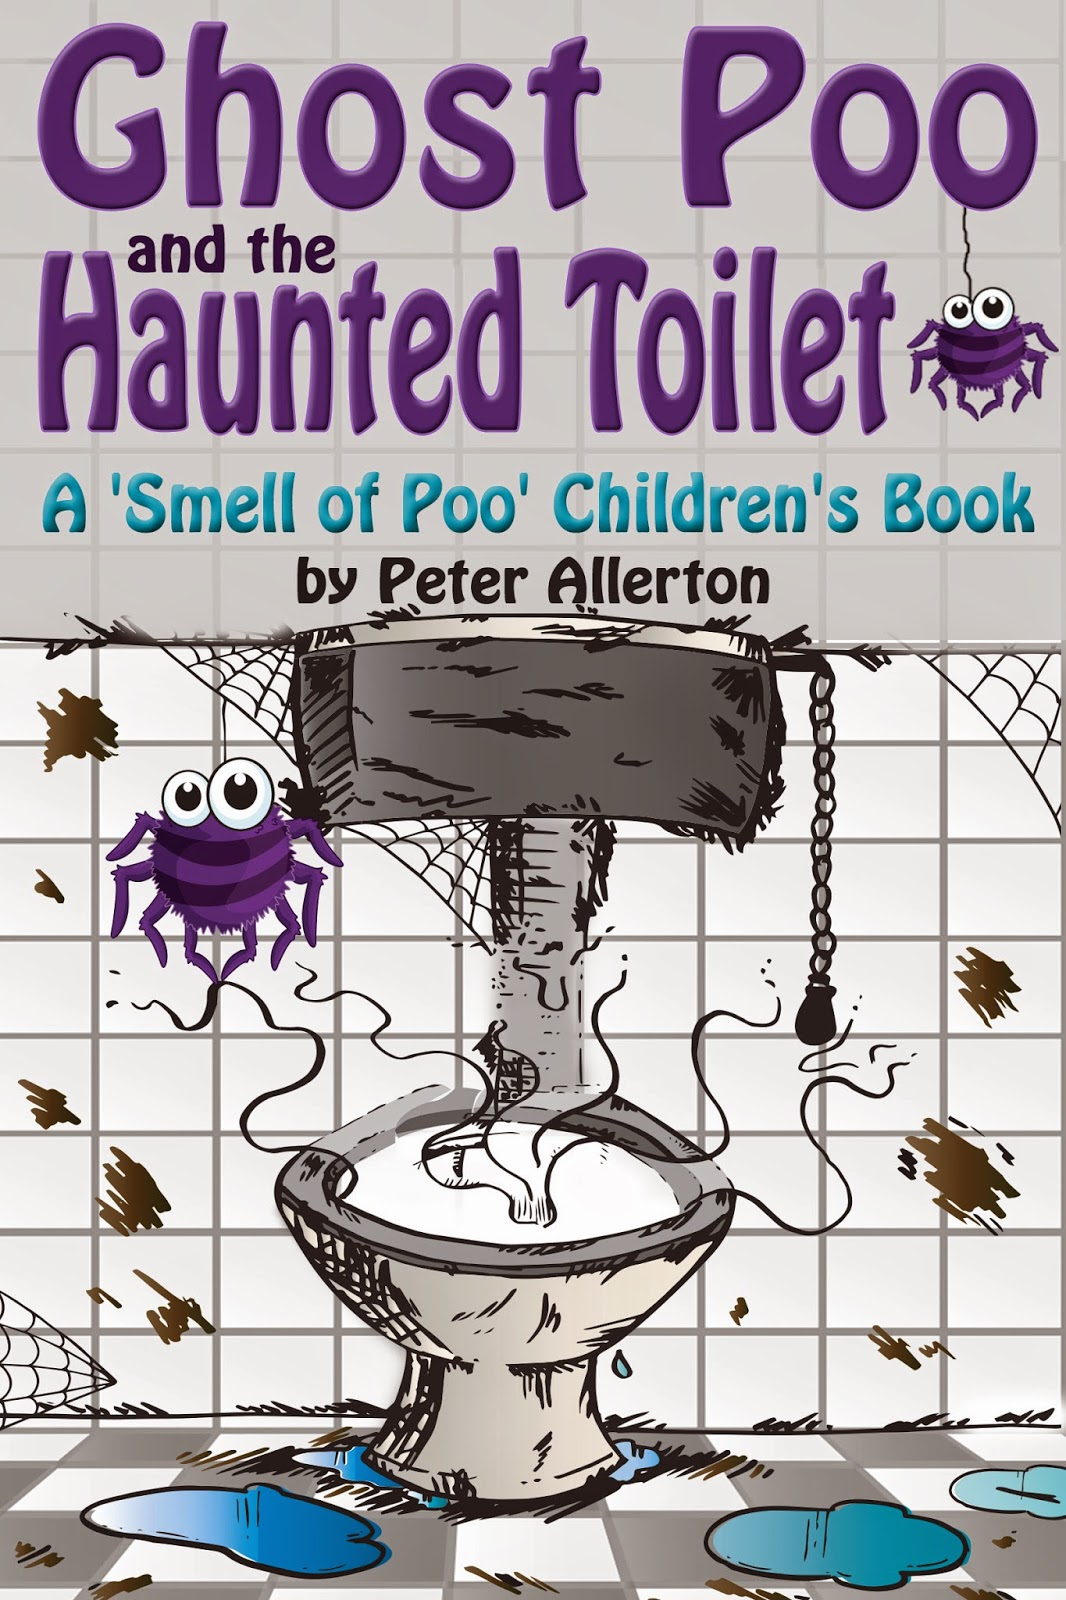 funny ghost children's story book